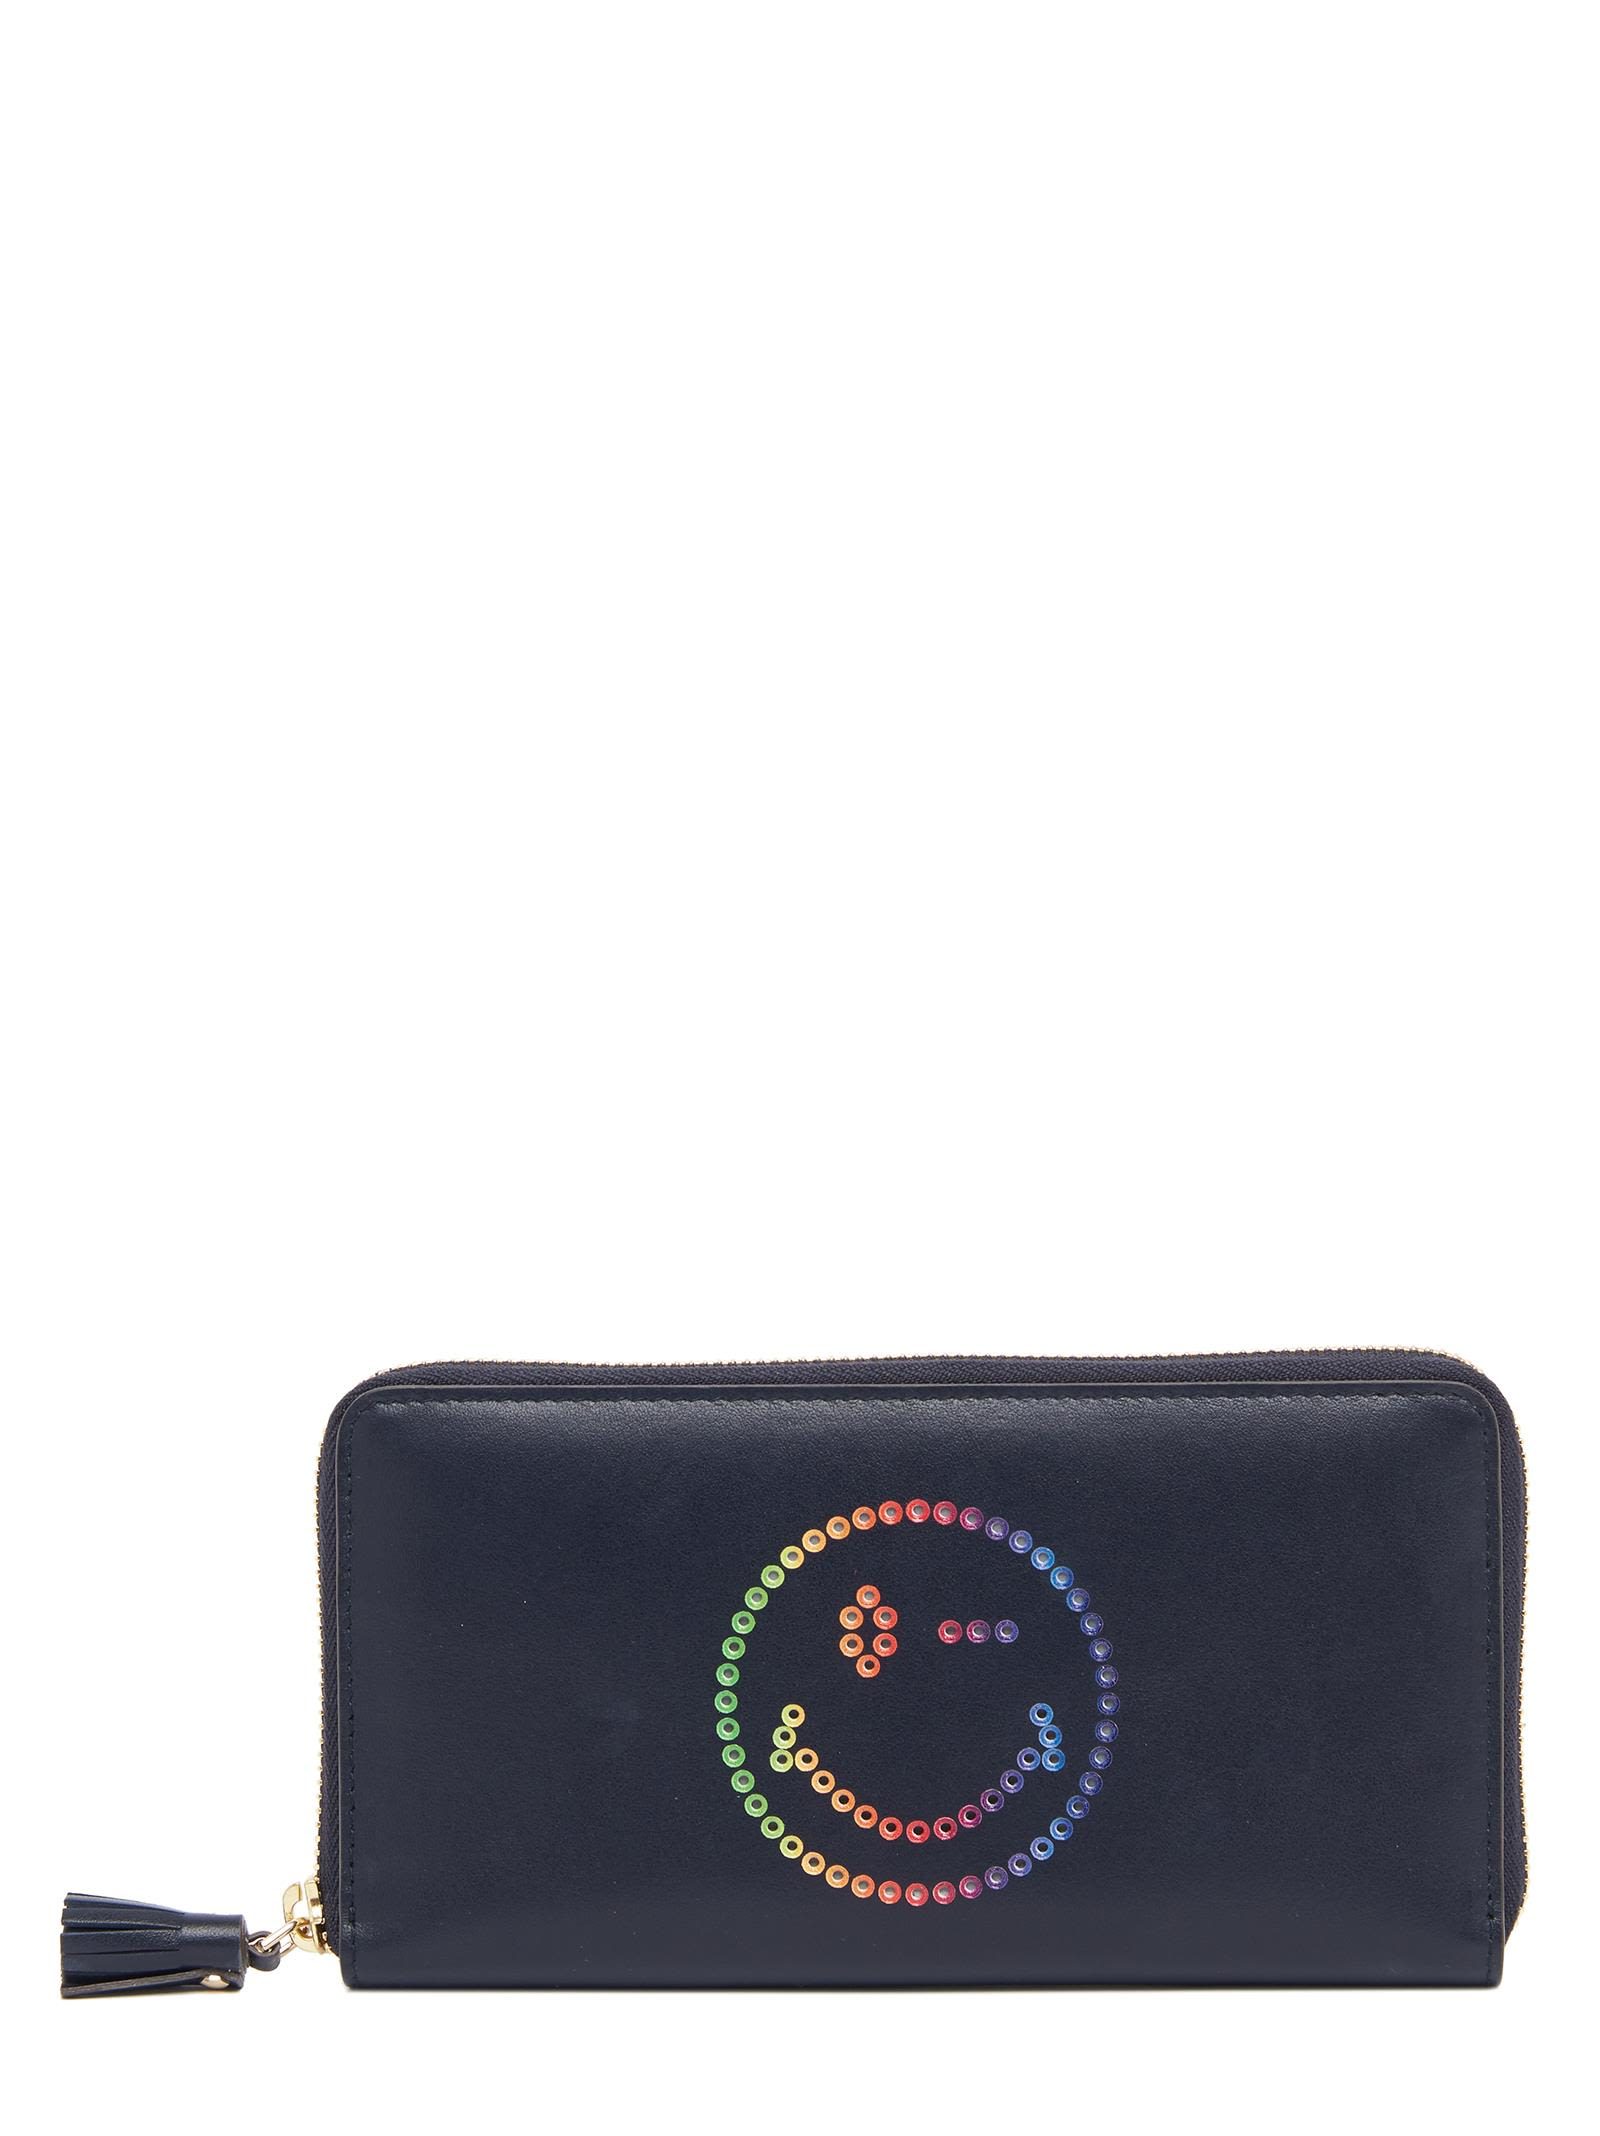 ANYA HINDMARCH RAIMBOW WEEK WALLET